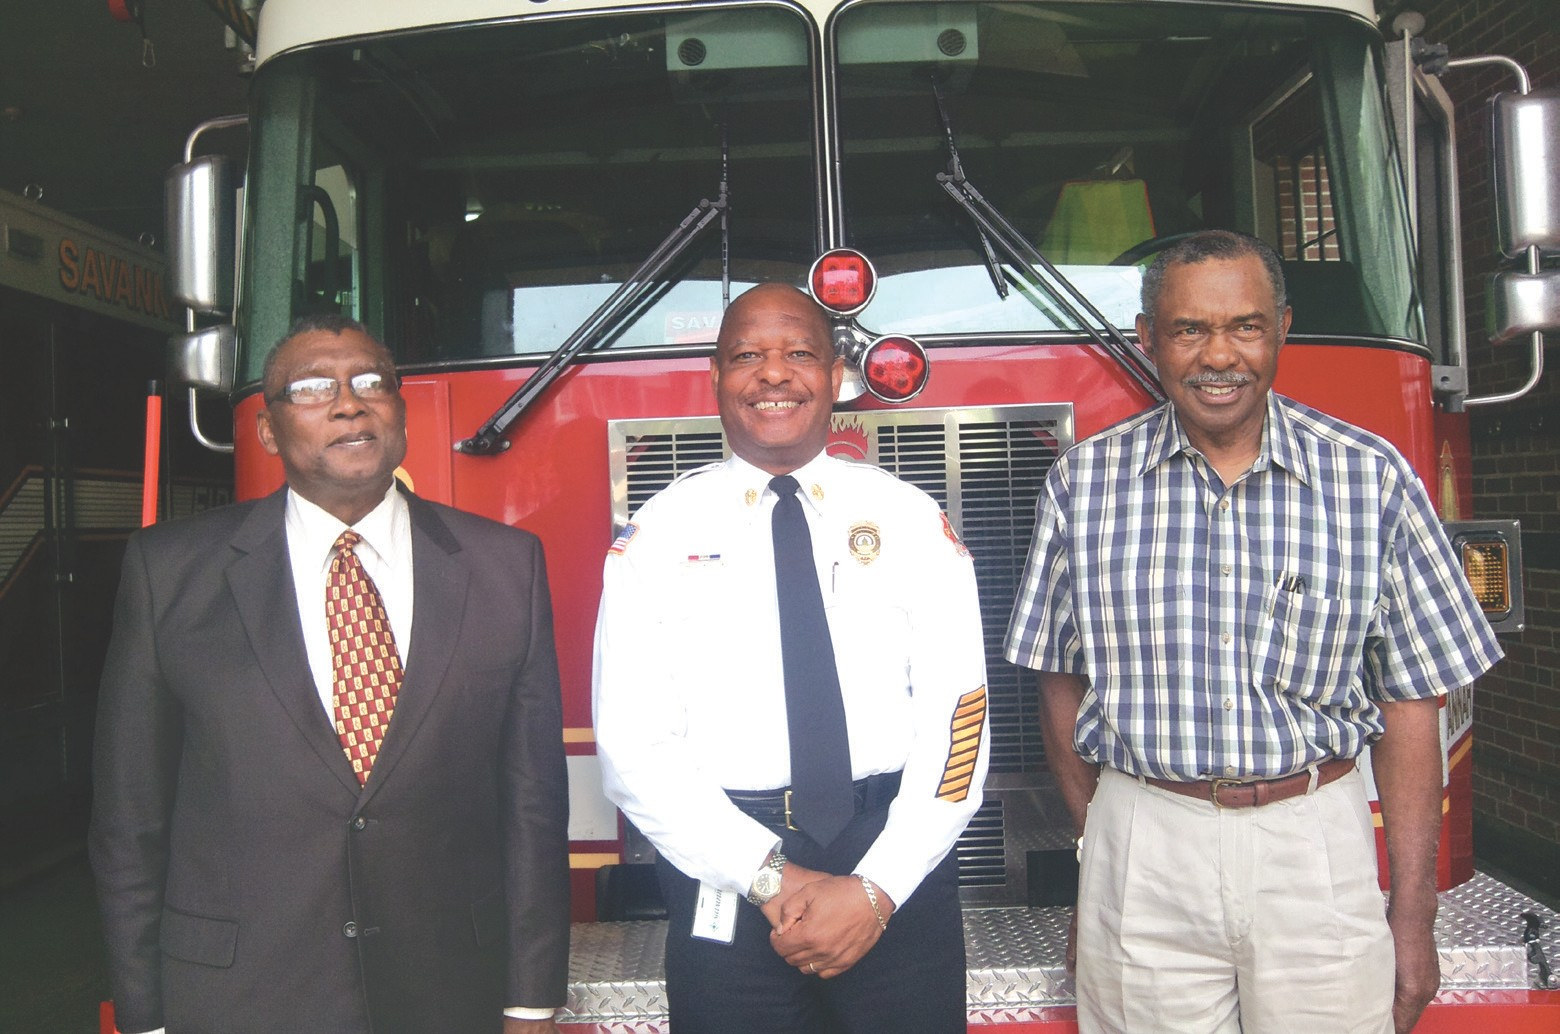 Purdy Bowers, (left) and Lewis Oliver (right) were among six black men hired by the Savannah Fire Department on May 1, 1963. Chief Charles Middleton (center) is the 2nd black Fire Chief following Paul Taylor who was first.